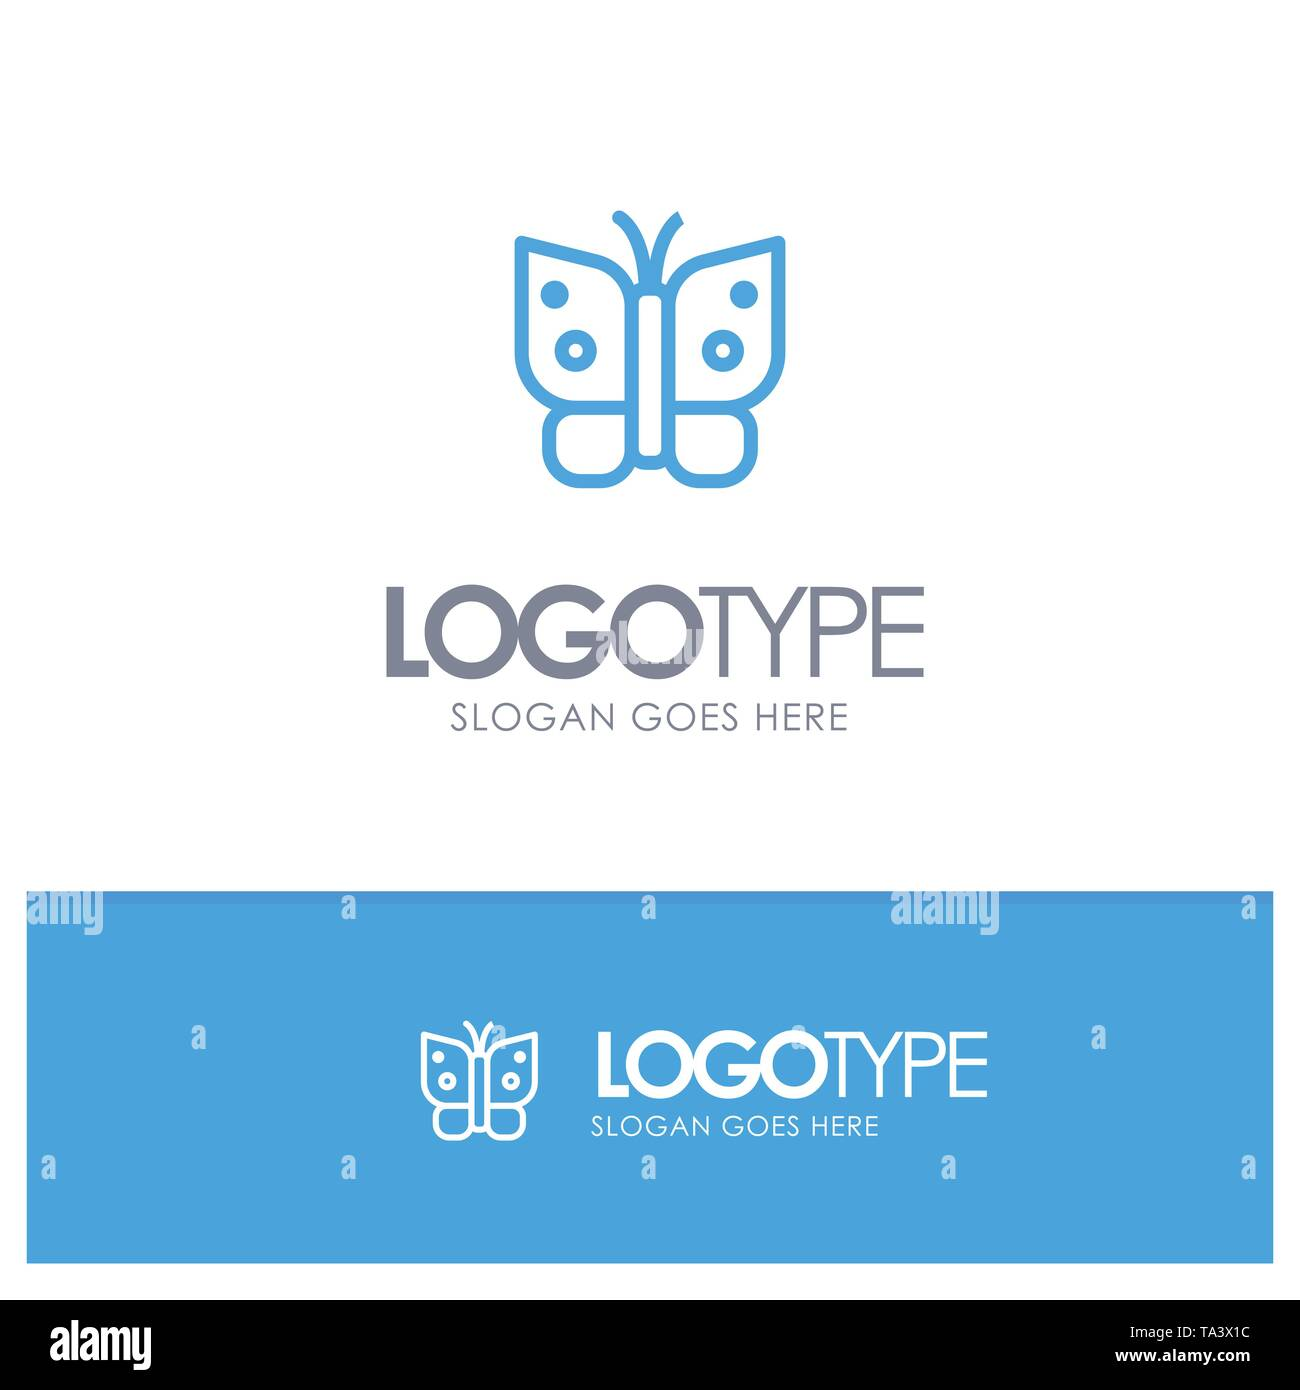 Butterfly, Freedom, Insect, Wings Blue Logo Line Style - Stock Image